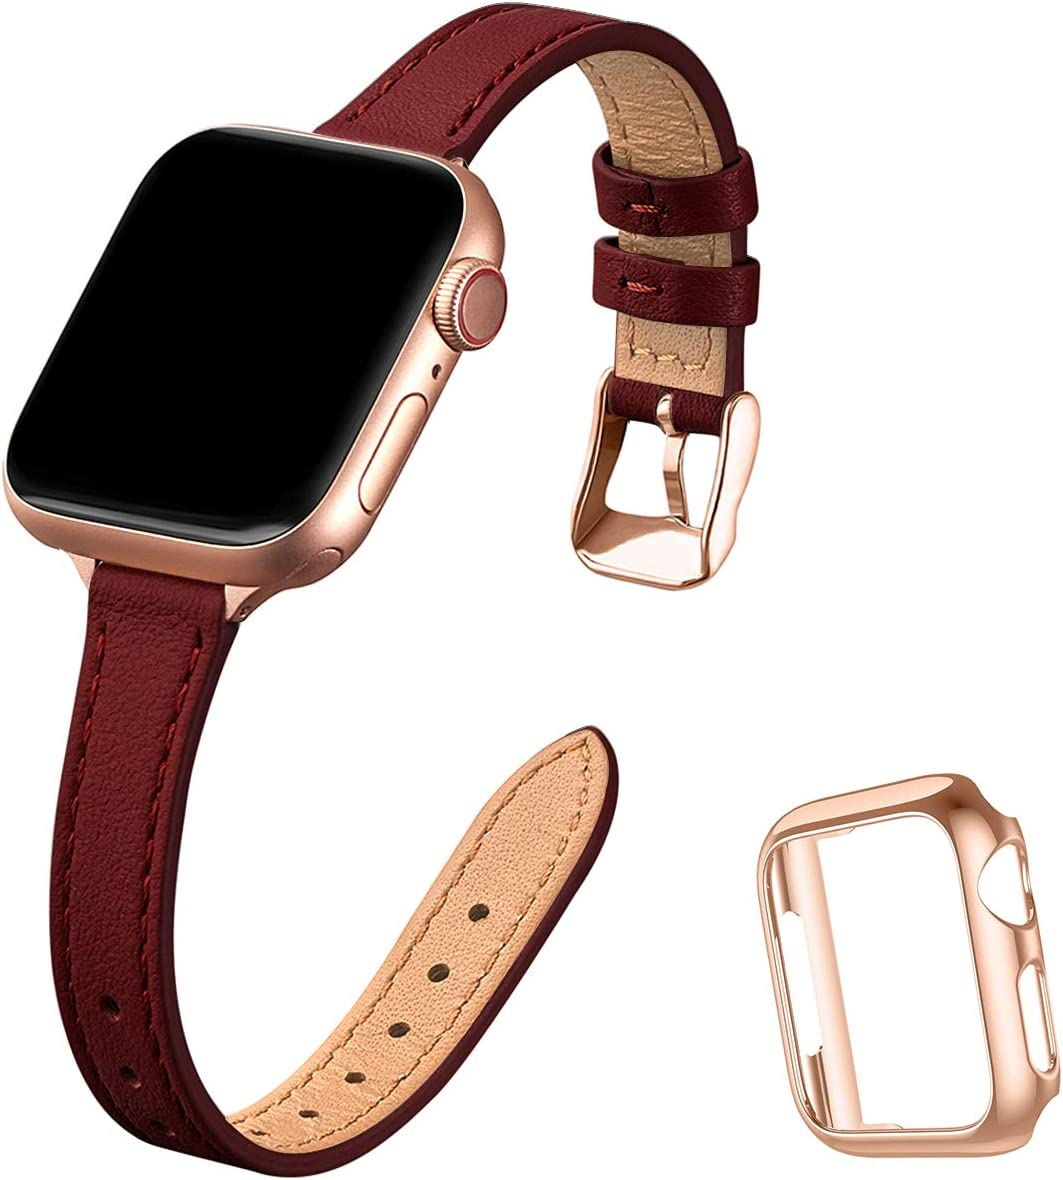 STIROLL Slim Leather Bands Compatible with Apple Watch Band 38mm 40mm 42mm 44mm, Top Grain Leather Watch Thin Wristband for iWatch SE Series 6/5/4/3/2/1 (Wine Red with Rose Gold, 42mm/44mm)